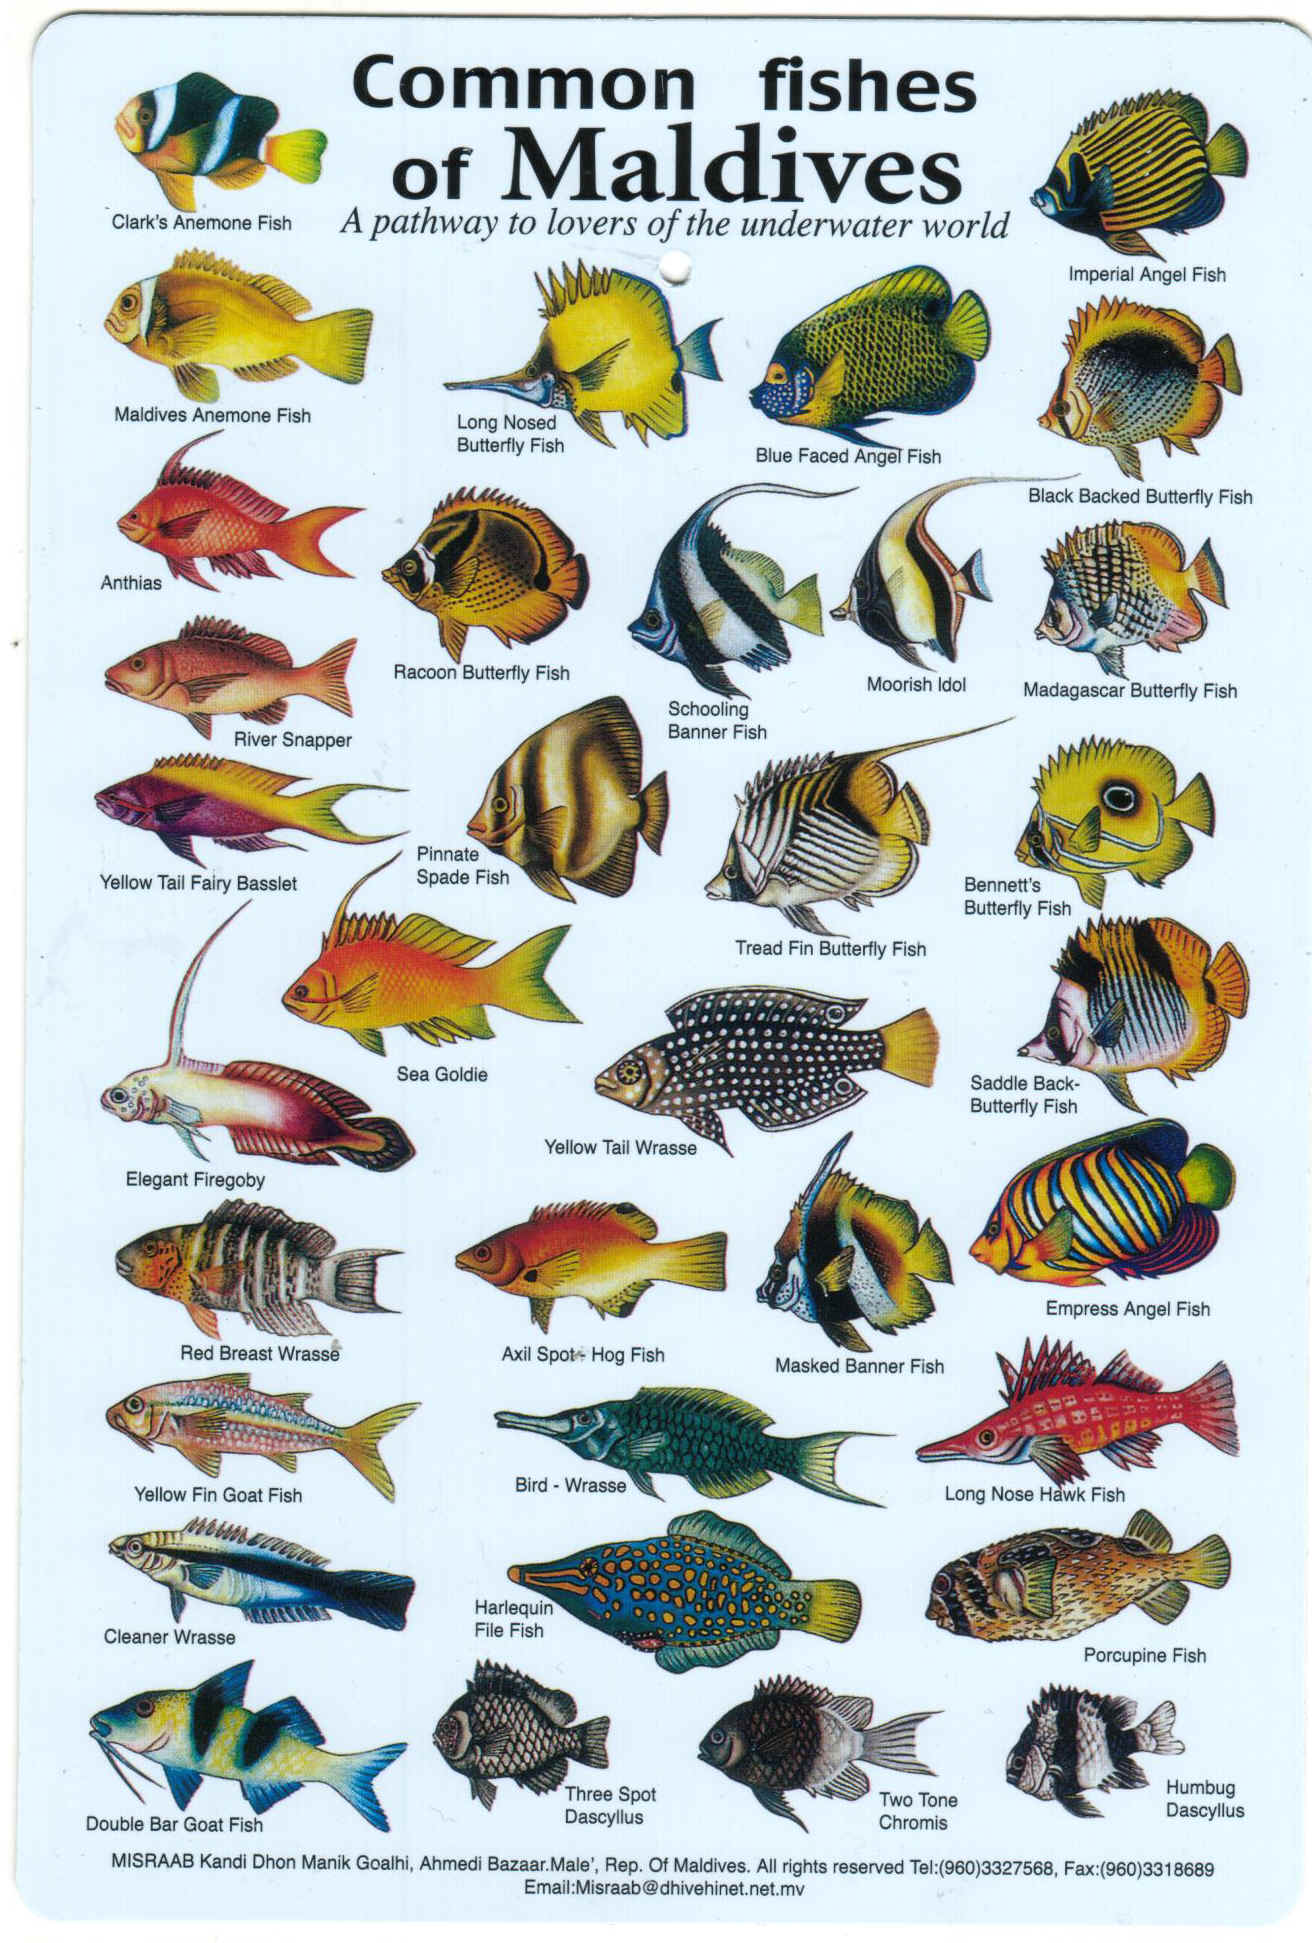 Freshwater fish malaysia - Fishes Of The Maldives Identification Chart Water Resistant Laminated Card